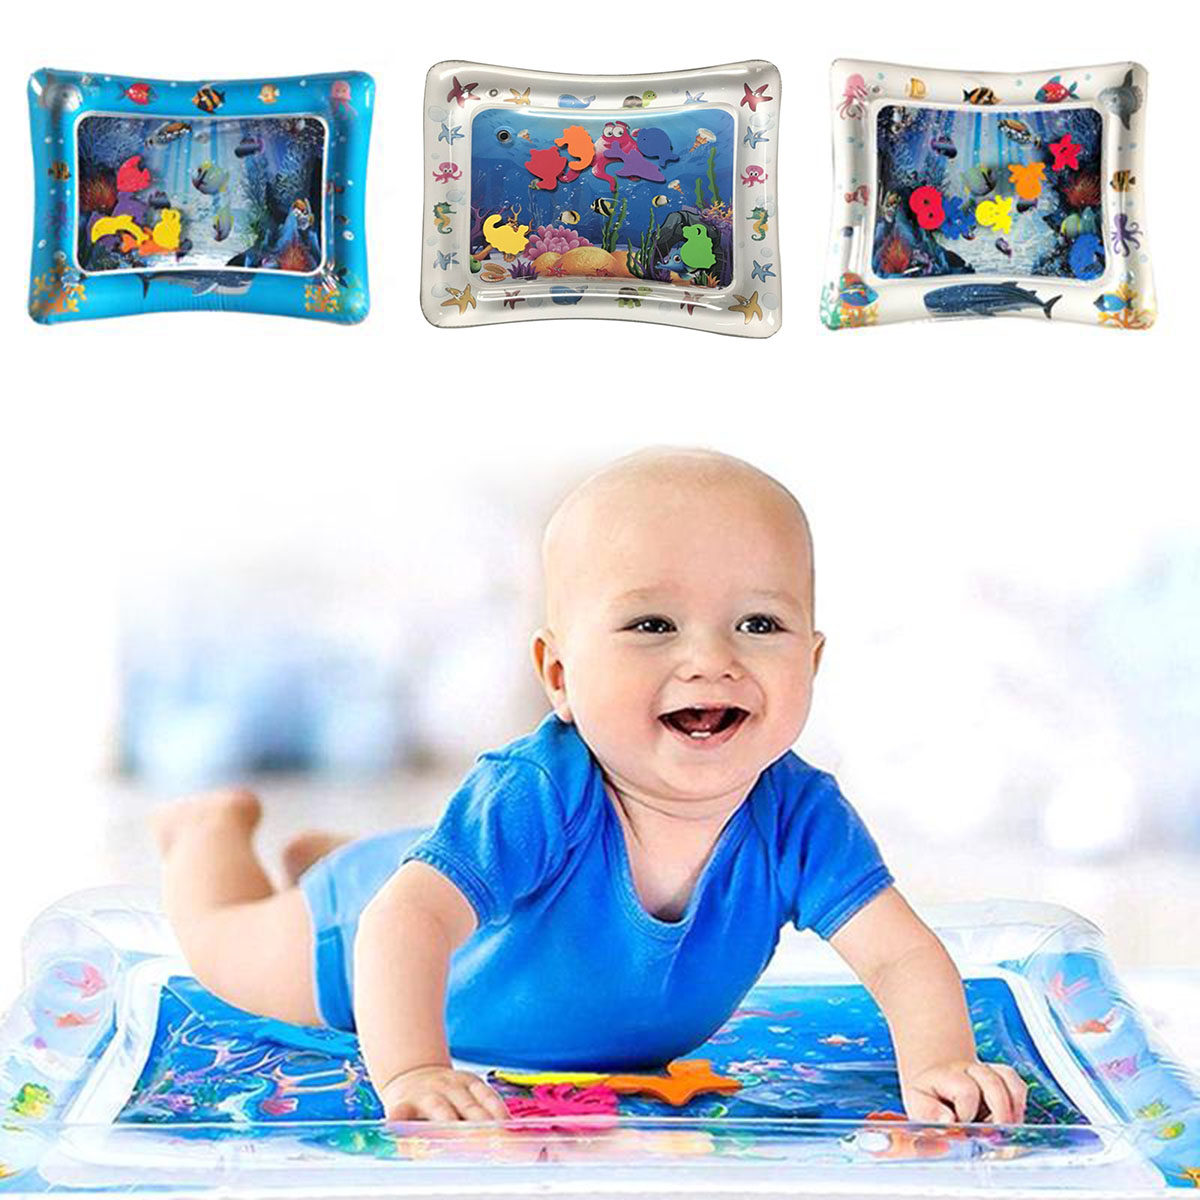 Creative Dual Use Baby Toys Kids Play Mat Inflatable Patted Pad Baby Inflatable Tummy Water Mat Prostrate Water Cushion Pat Pad